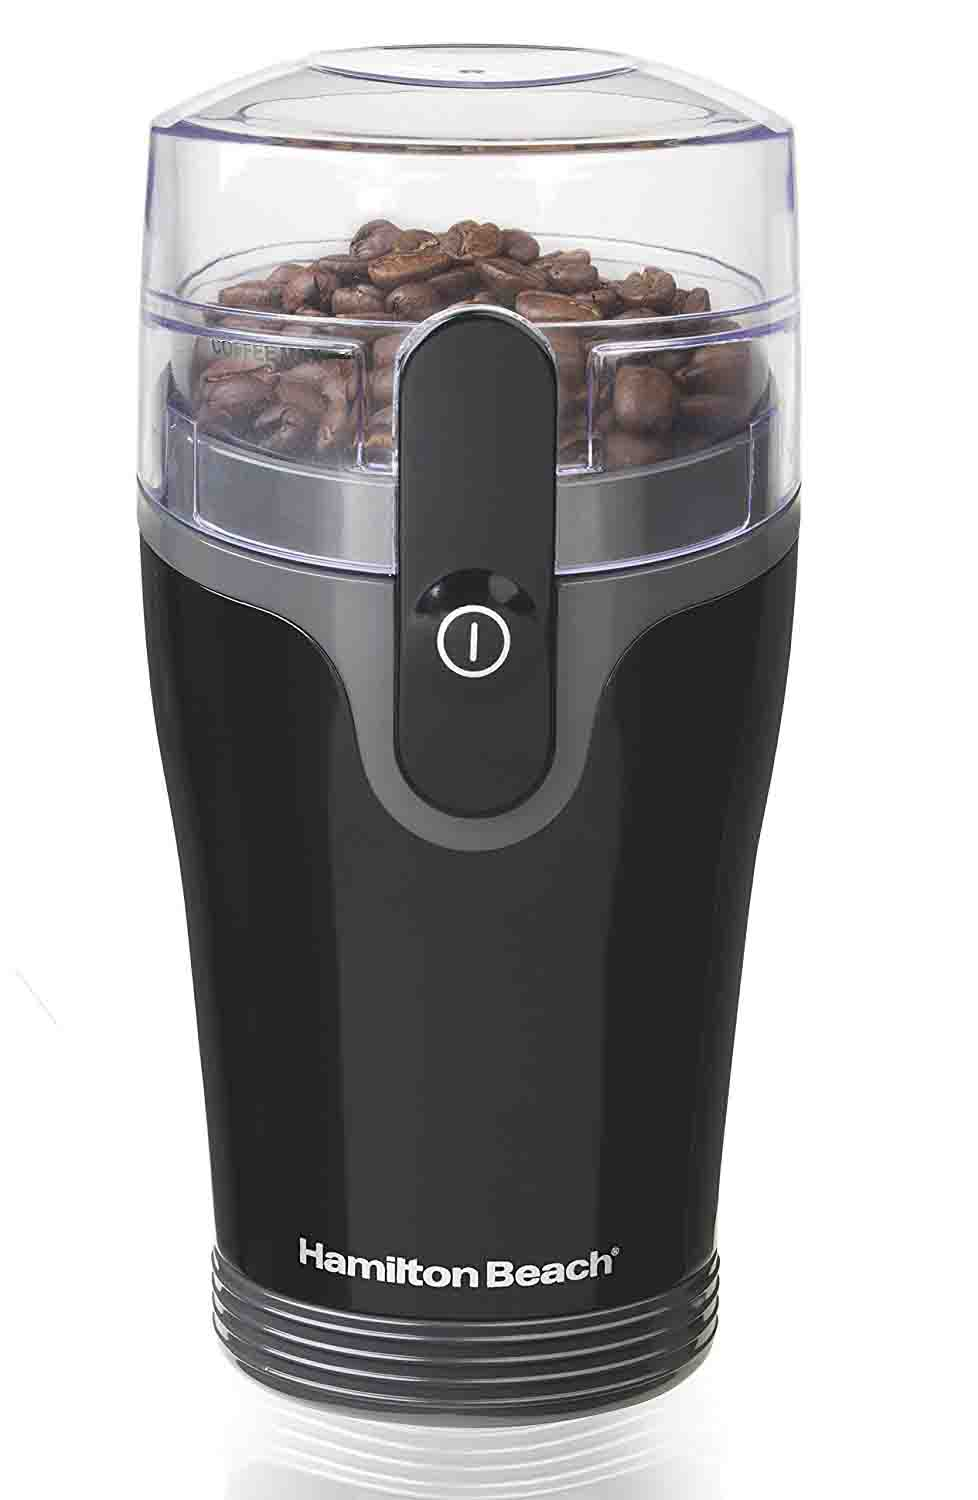 Best Manual Coffee Grinder for Hamilton